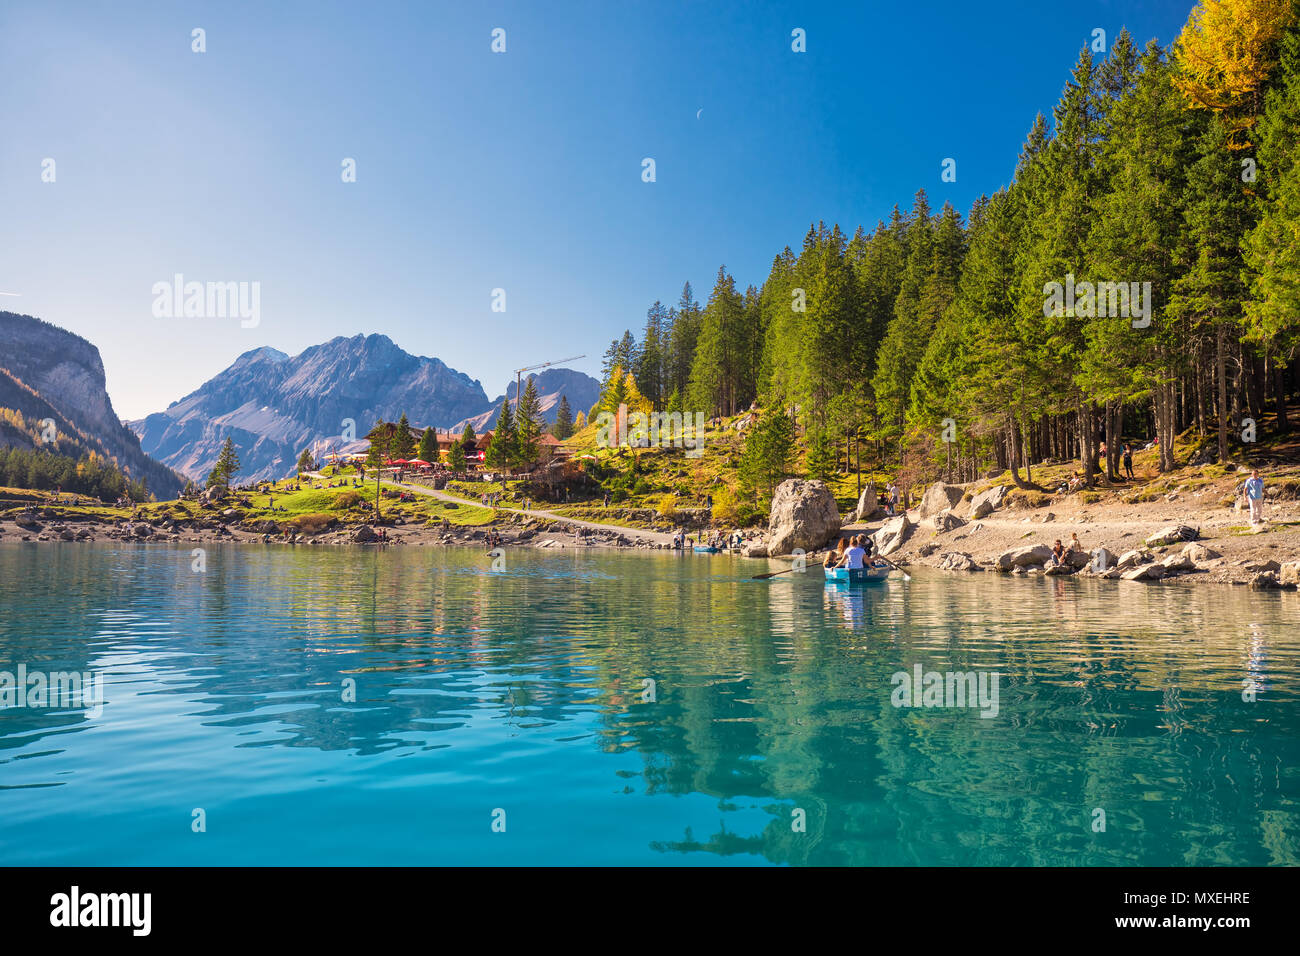 OESCHINENSEE, SWITZERLAND - October 2017 - Amazing tourquise Oeschinnensee with waterfalls, wooden chalet and Swiss Alps, Berner Oberland, Switzerland - Stock Image